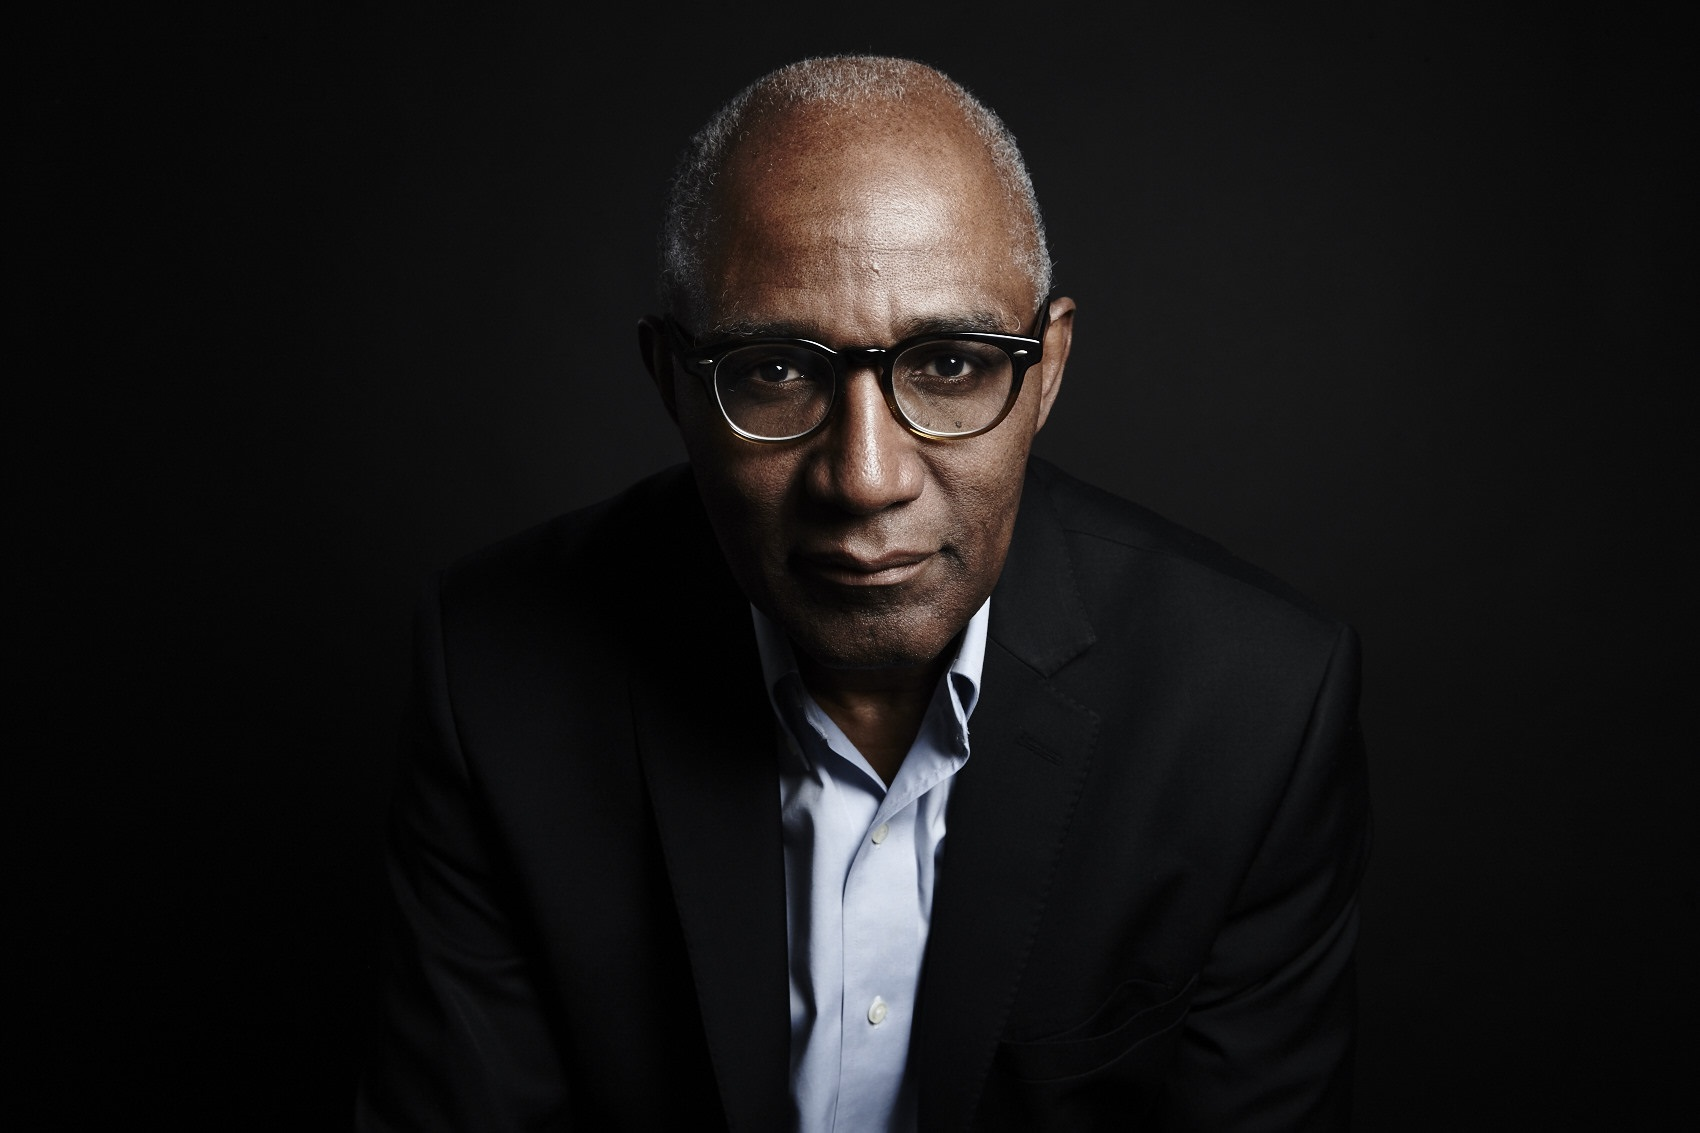 Metro – 'White people should be allowed to talk about race': Trevor Phillips on his controversial Channel 4 documentary